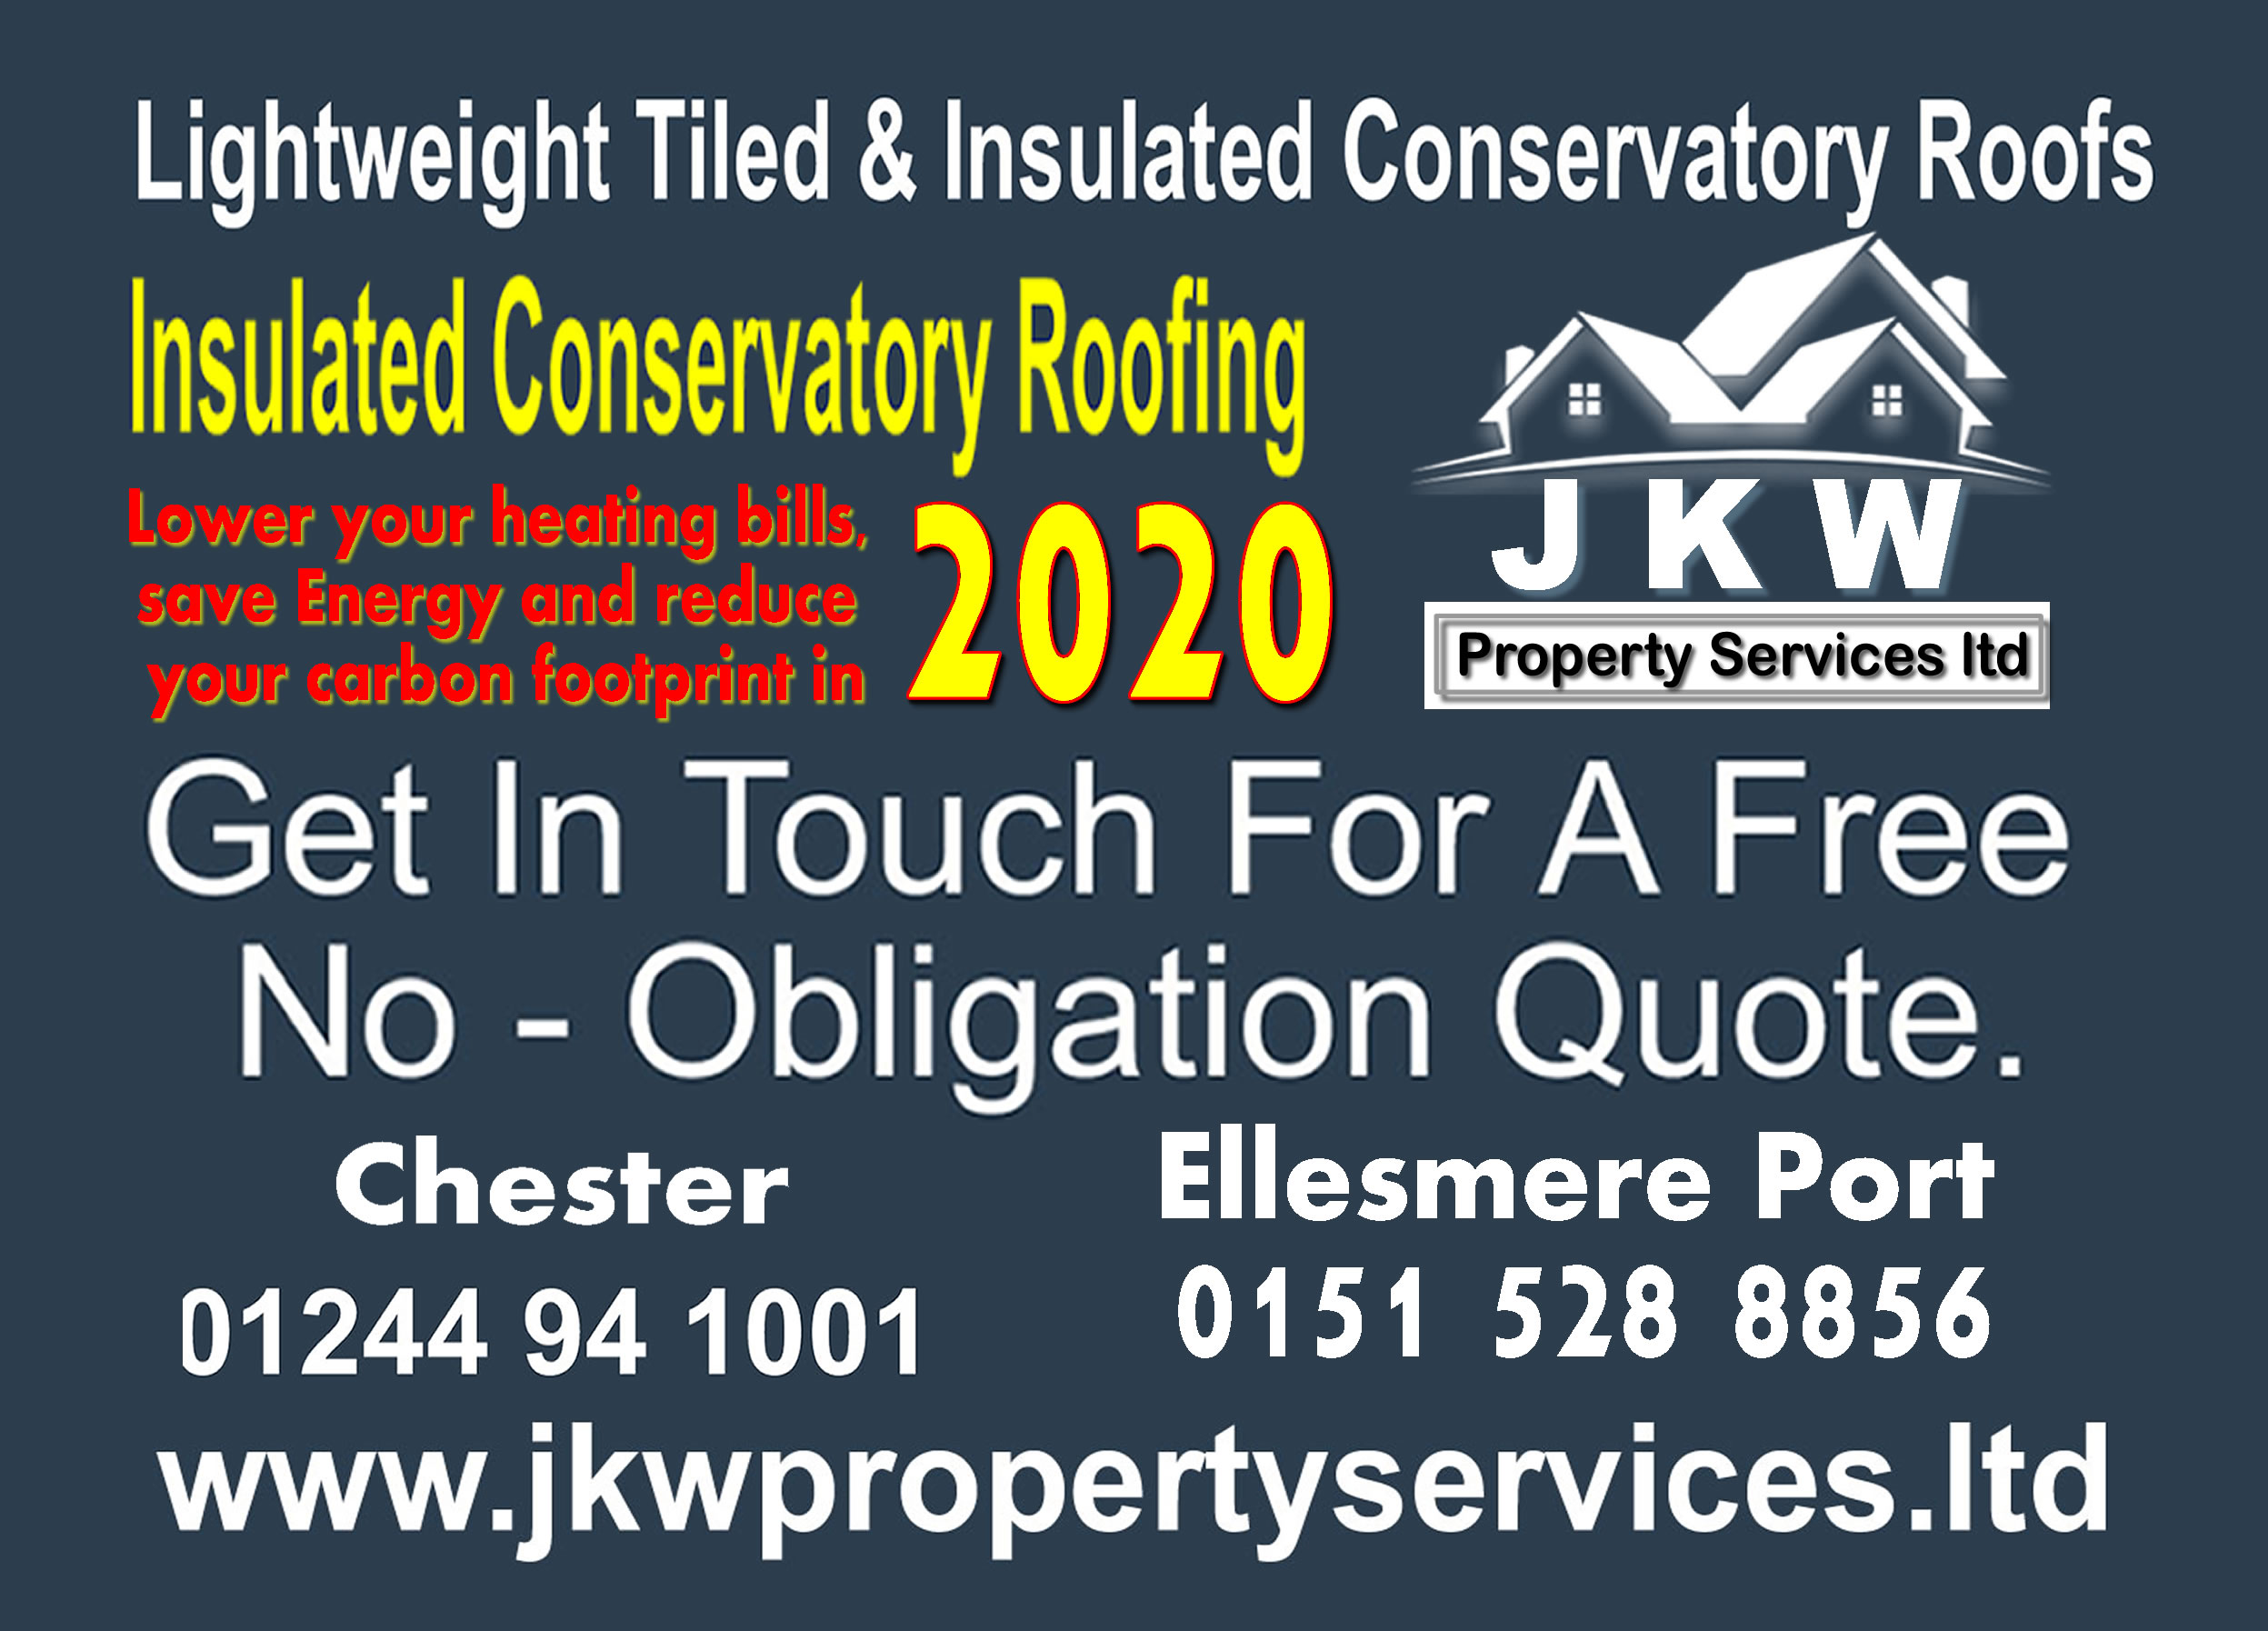 New Conservatory Roof Conversions in Ellesmere Port